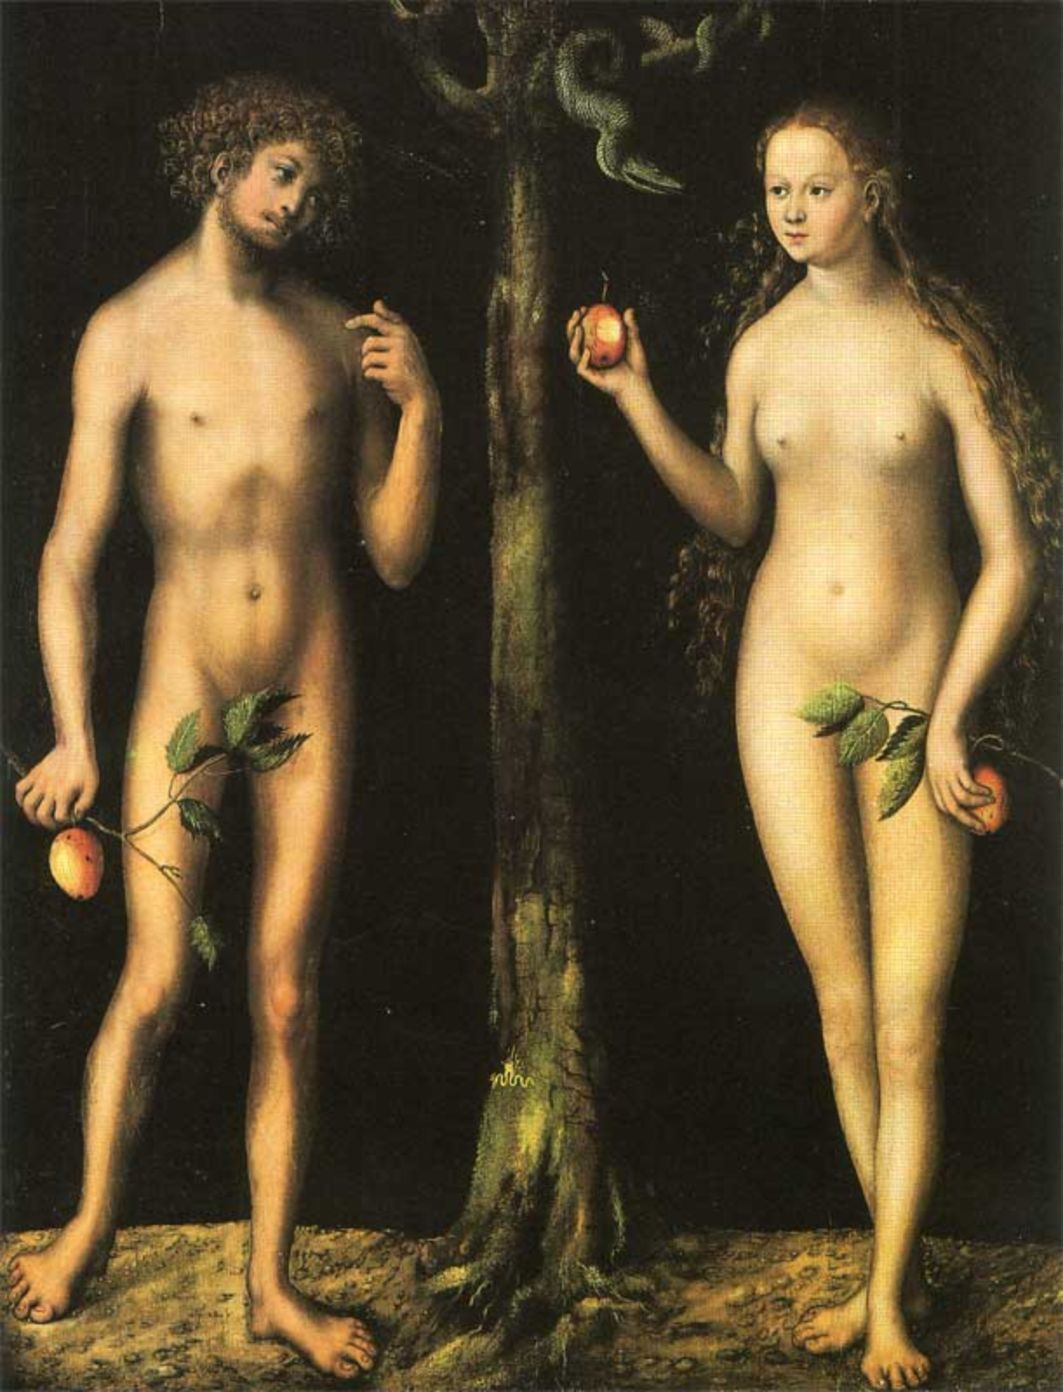 an analysis of the relationship of adam and eve in the poem eve names the animals by susan donnelly Final - feminism - the original sin in 1980 sandra m gilbert and susan gubar published bandwagon to condemn milton's treatment of eve in his epic poem.